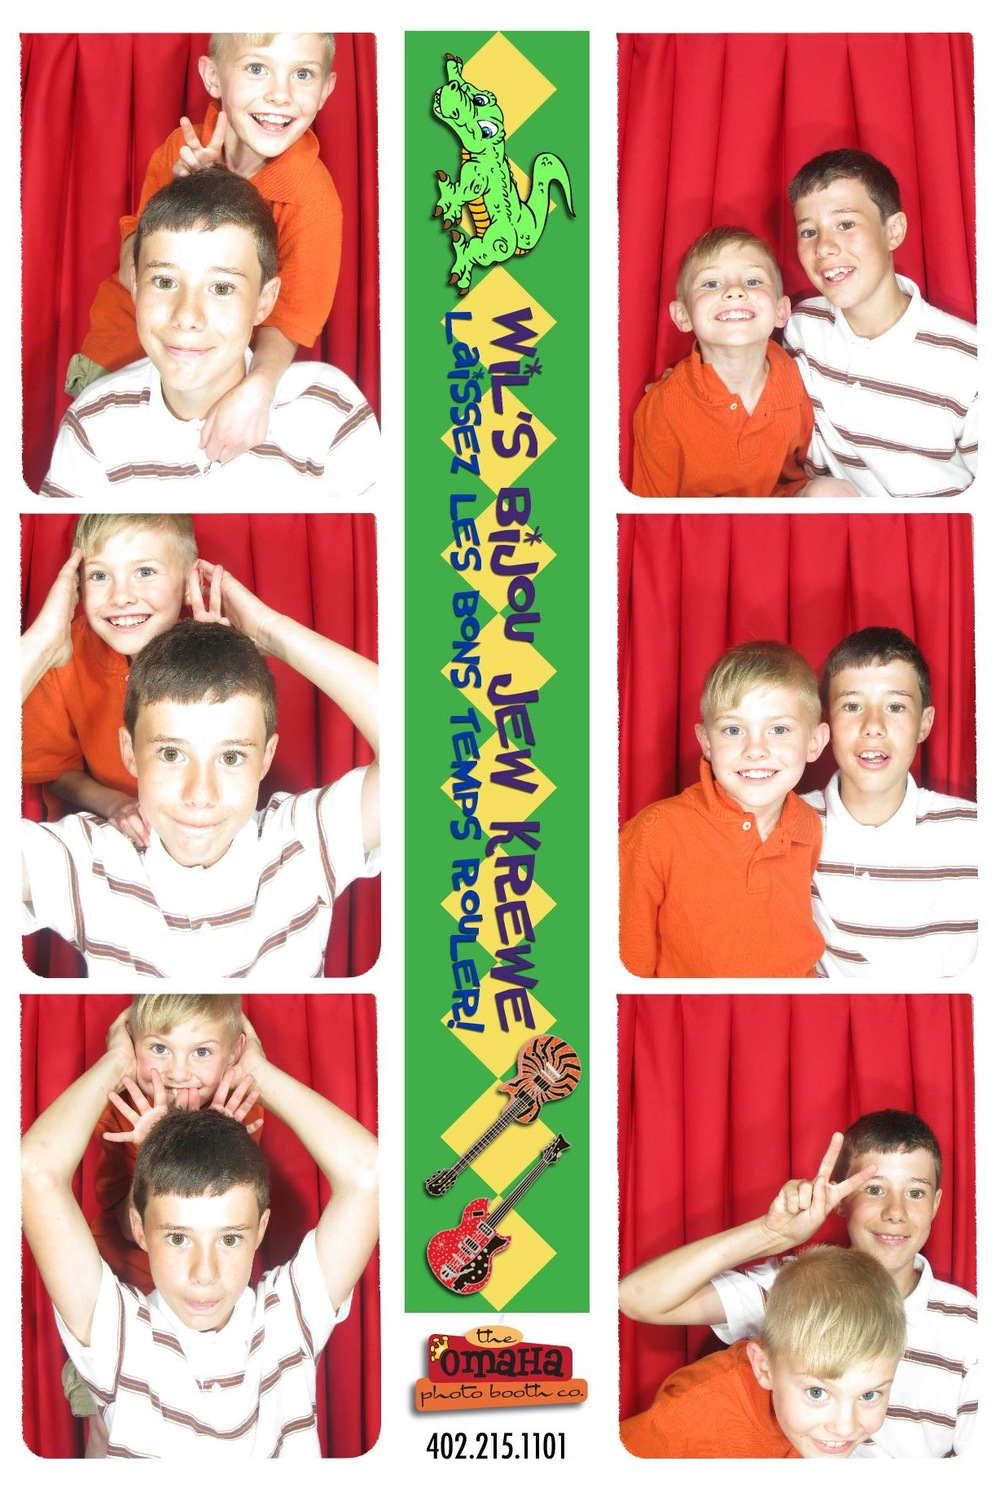 Bar and Bat Mitzvah Omaha Photo Booth Rental